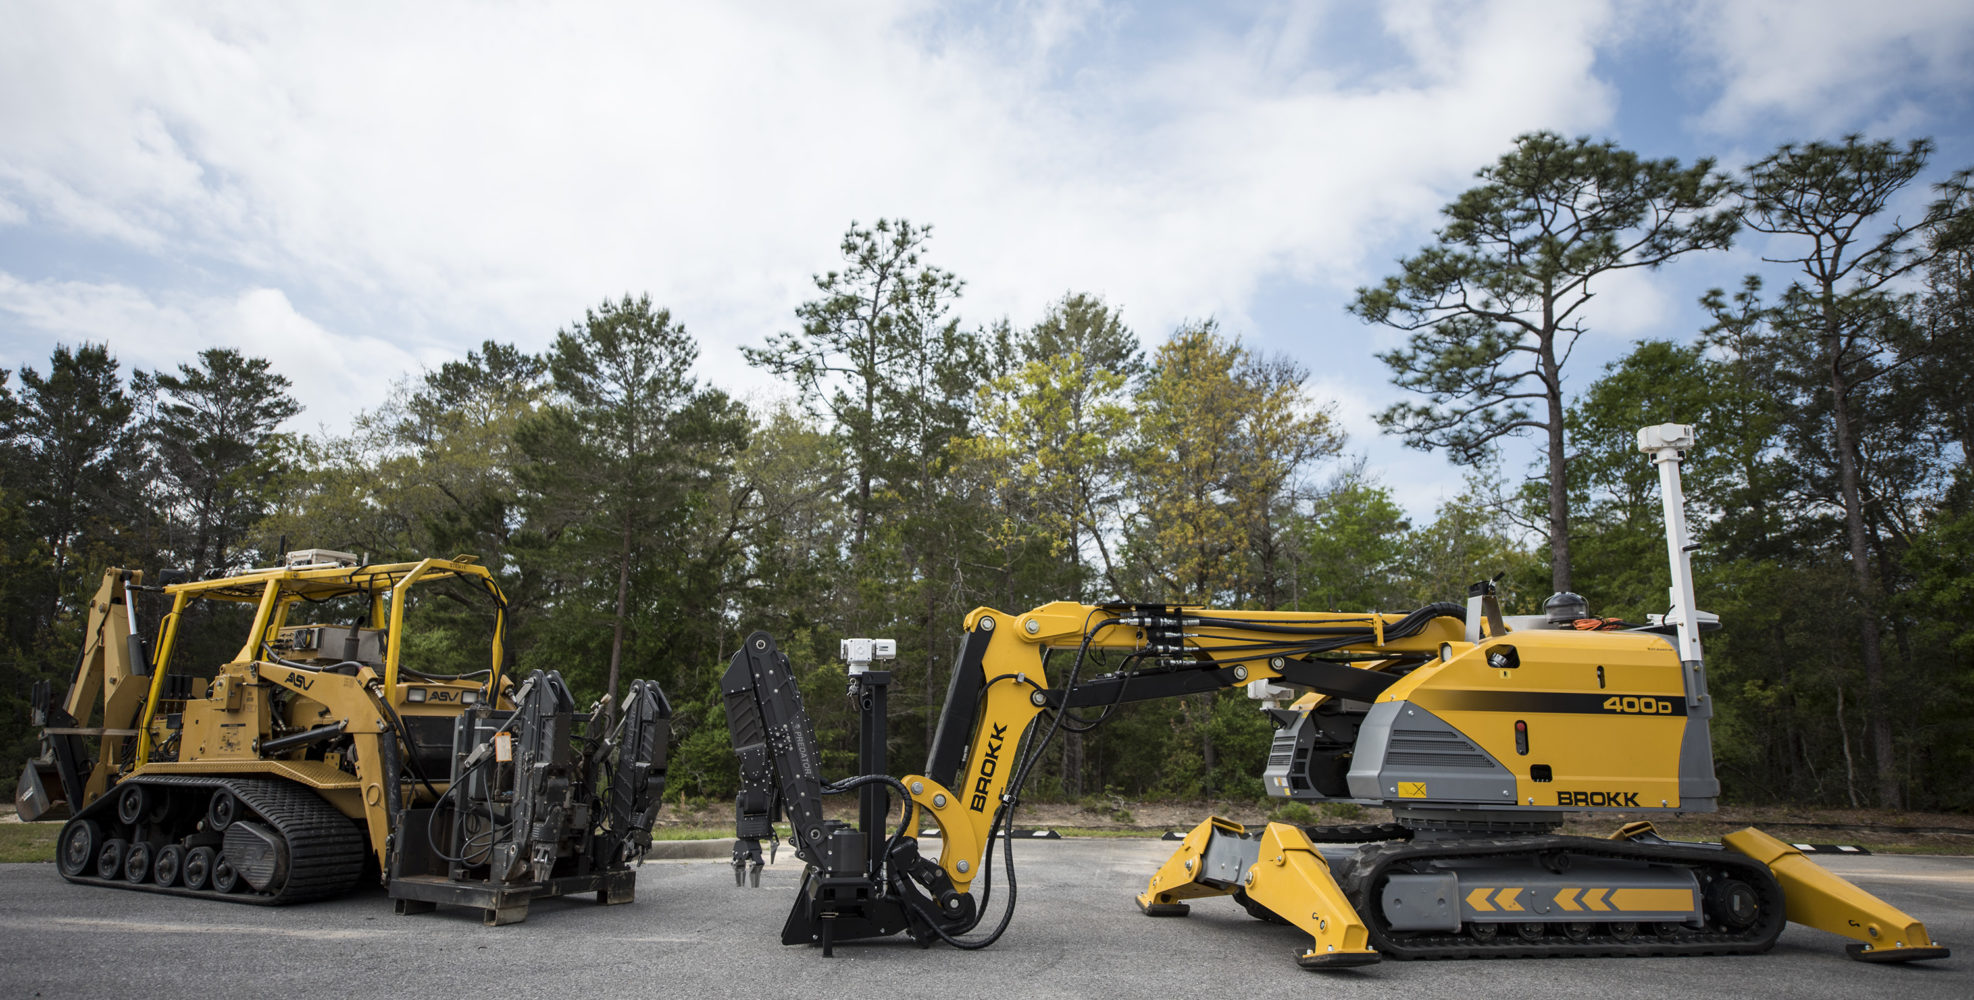 Construction Disruption – Robots are Super-Powering Industrial Productivity